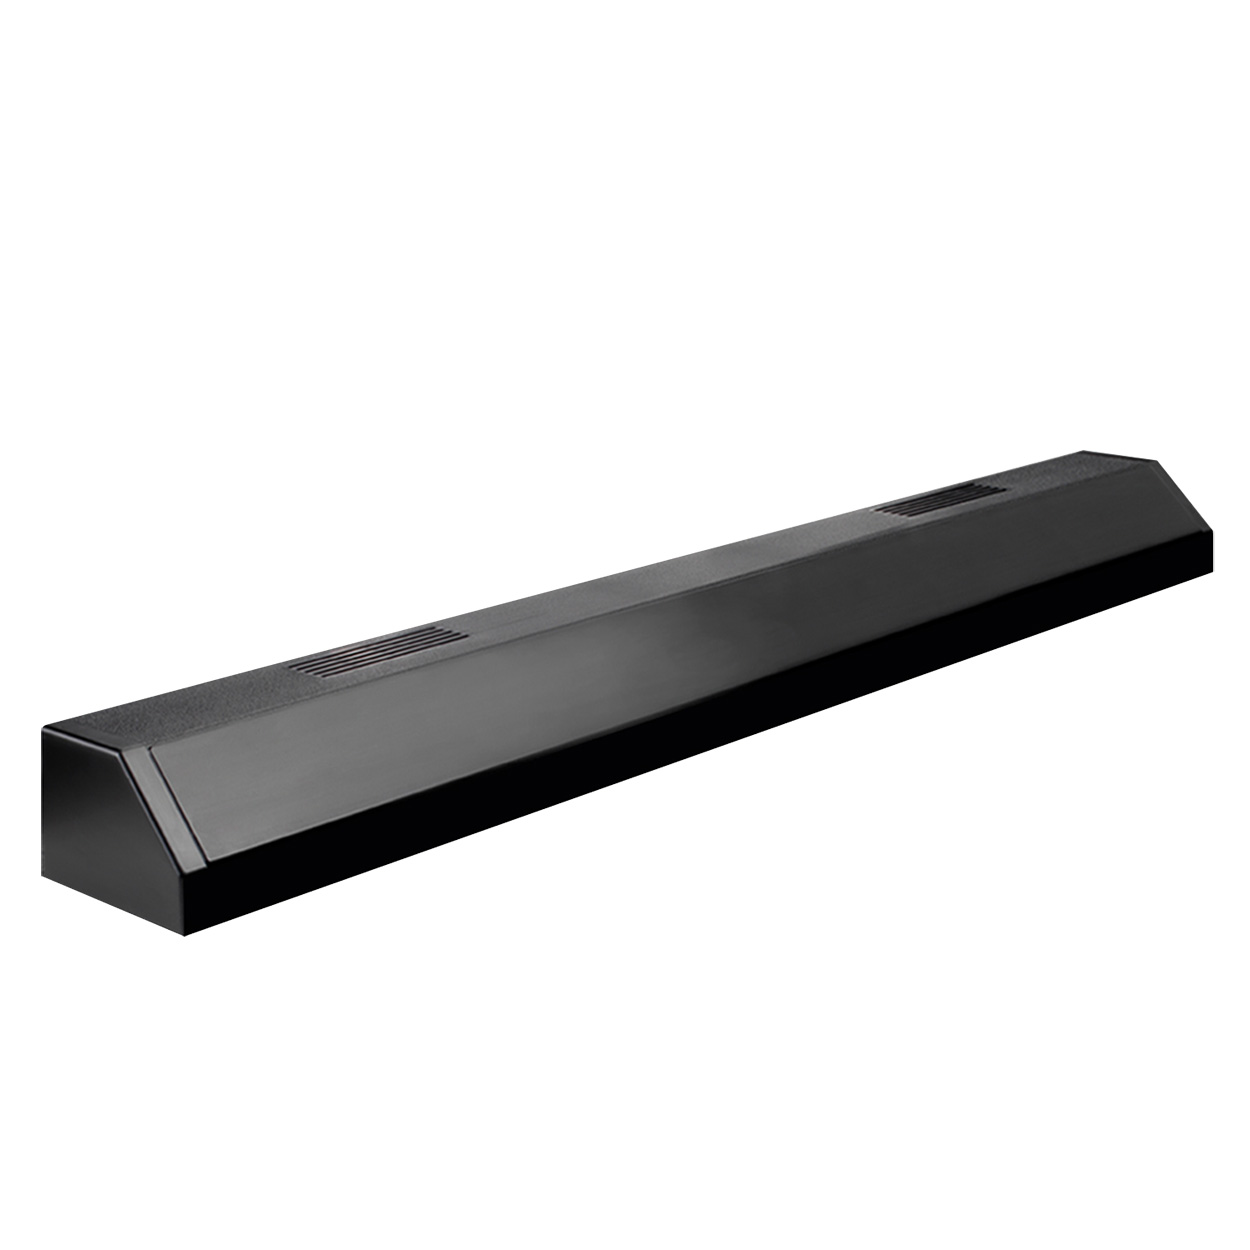 Aqueon Deluxe Single Fluorescent Strip Light - Black - 36 13160